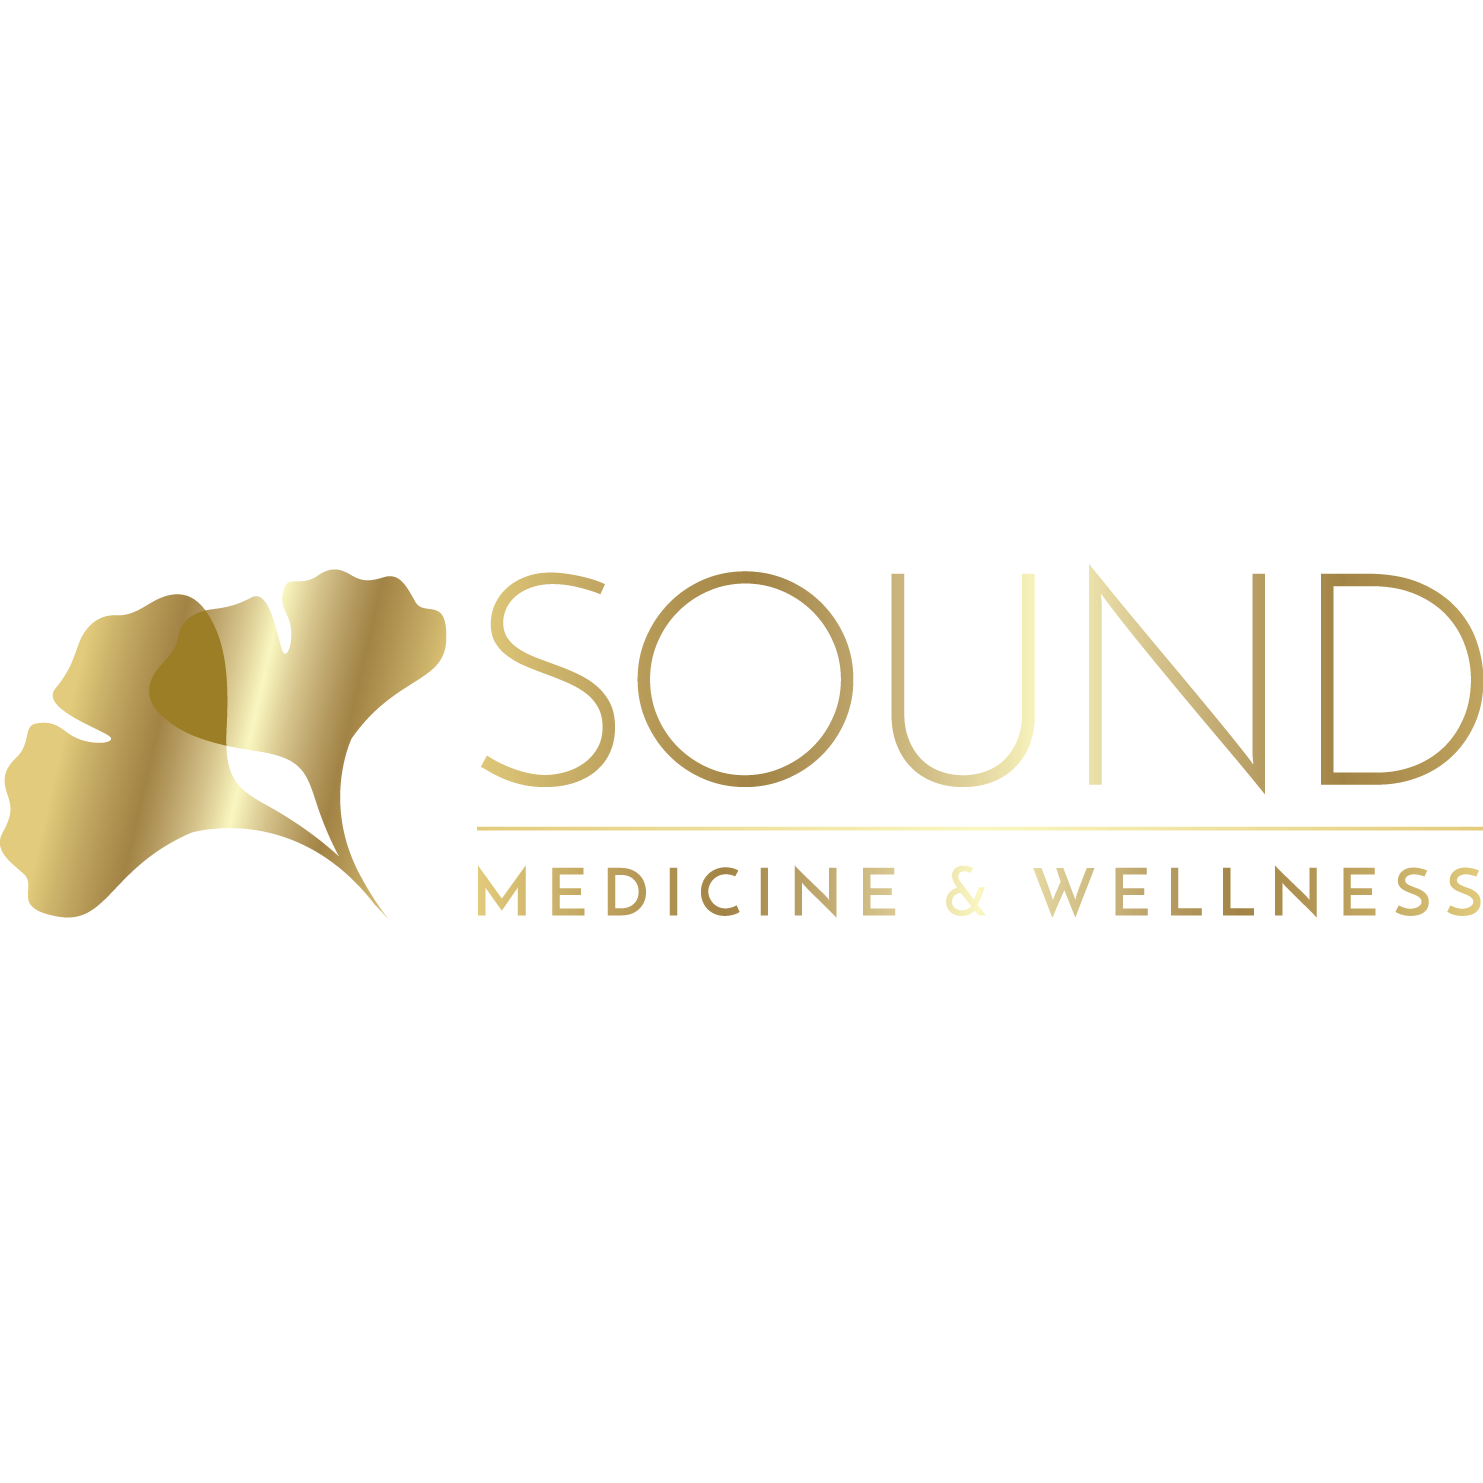 Sound Medicine & Wellness